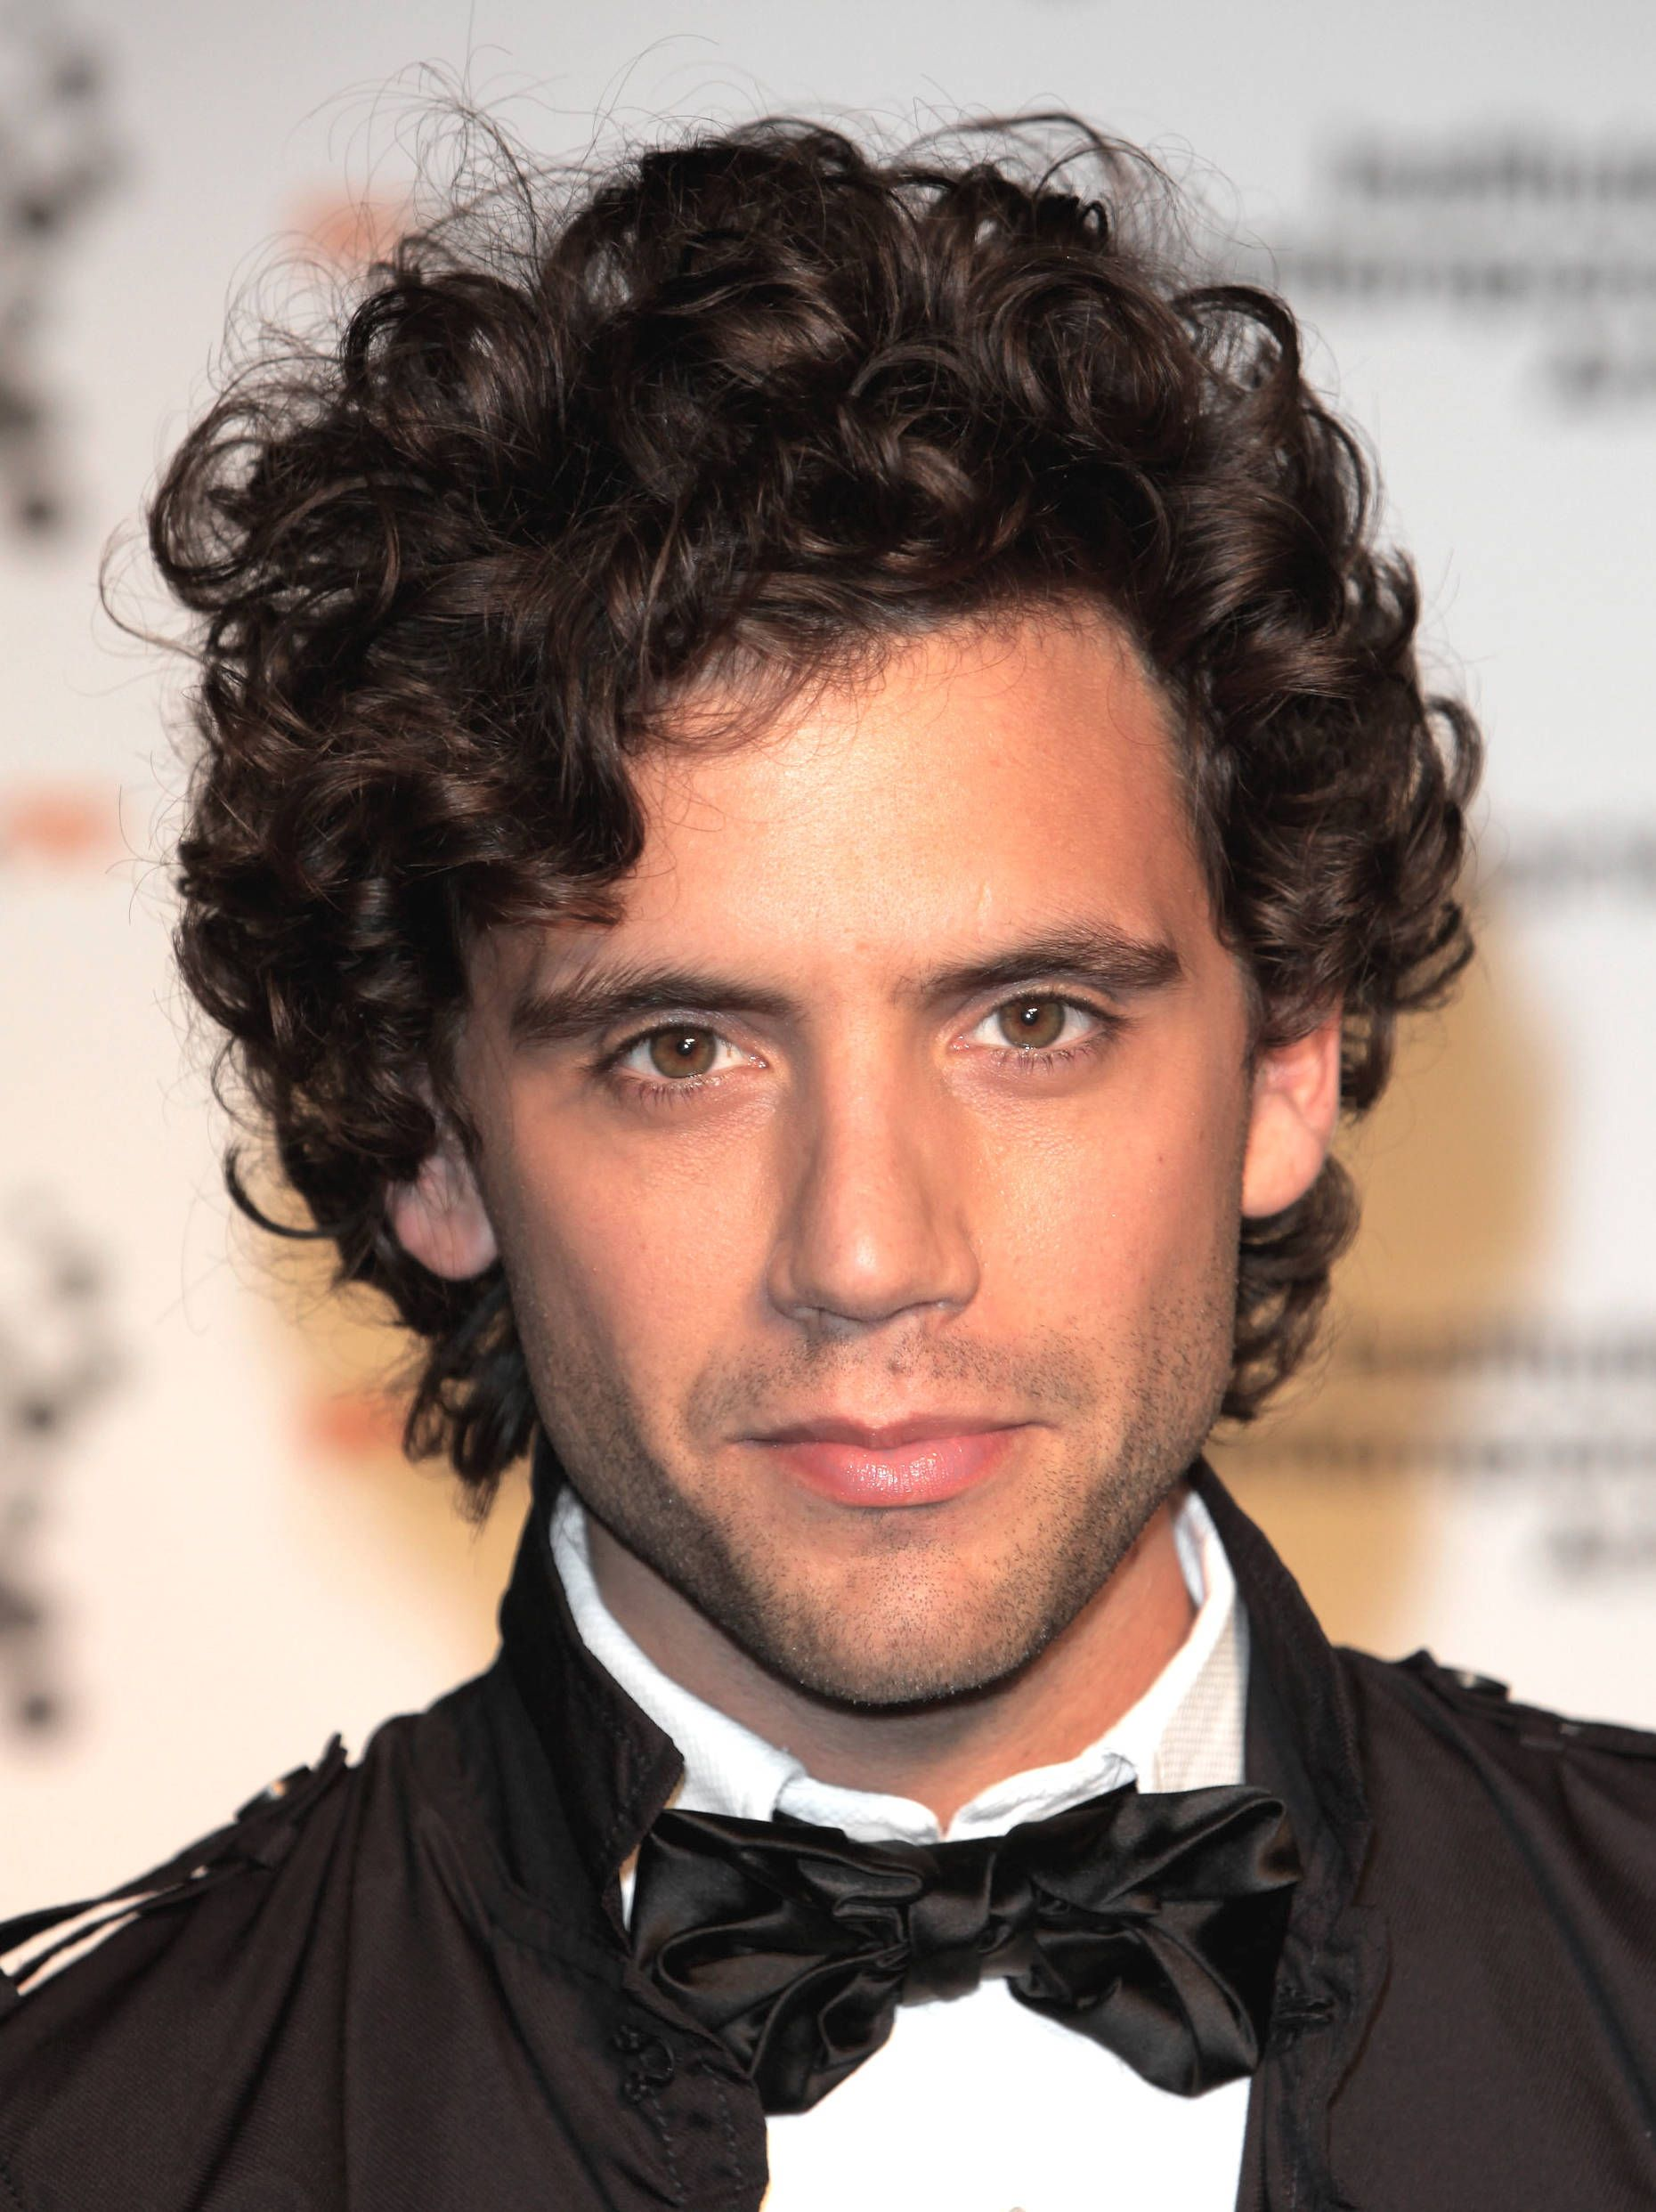 10 Famous Men With Curly Hair